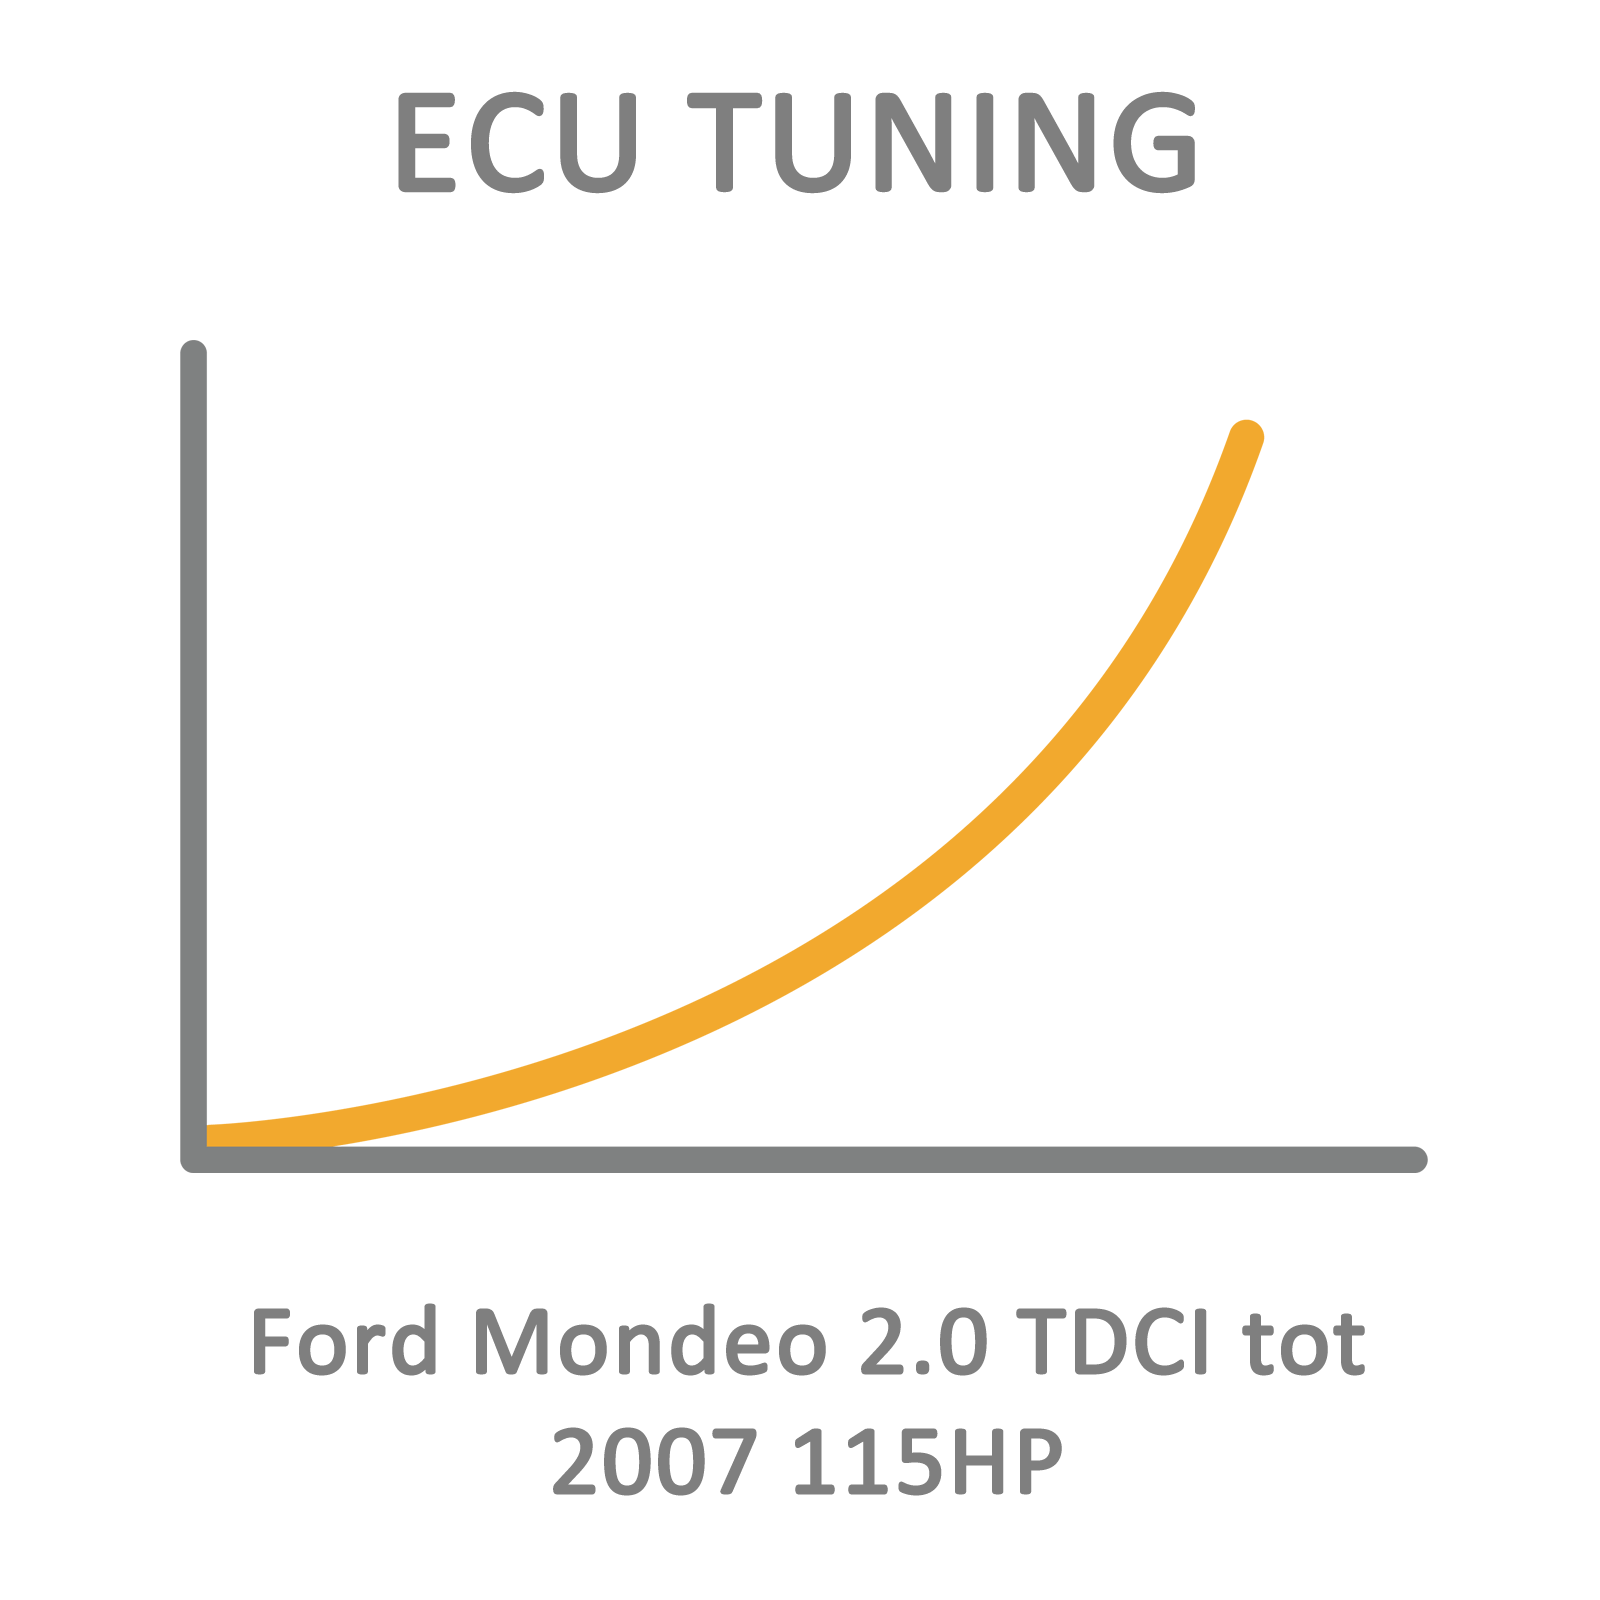 Ford Mondeo 2.0 TDCI tot 2007 115HP ECU Tuning Remapping